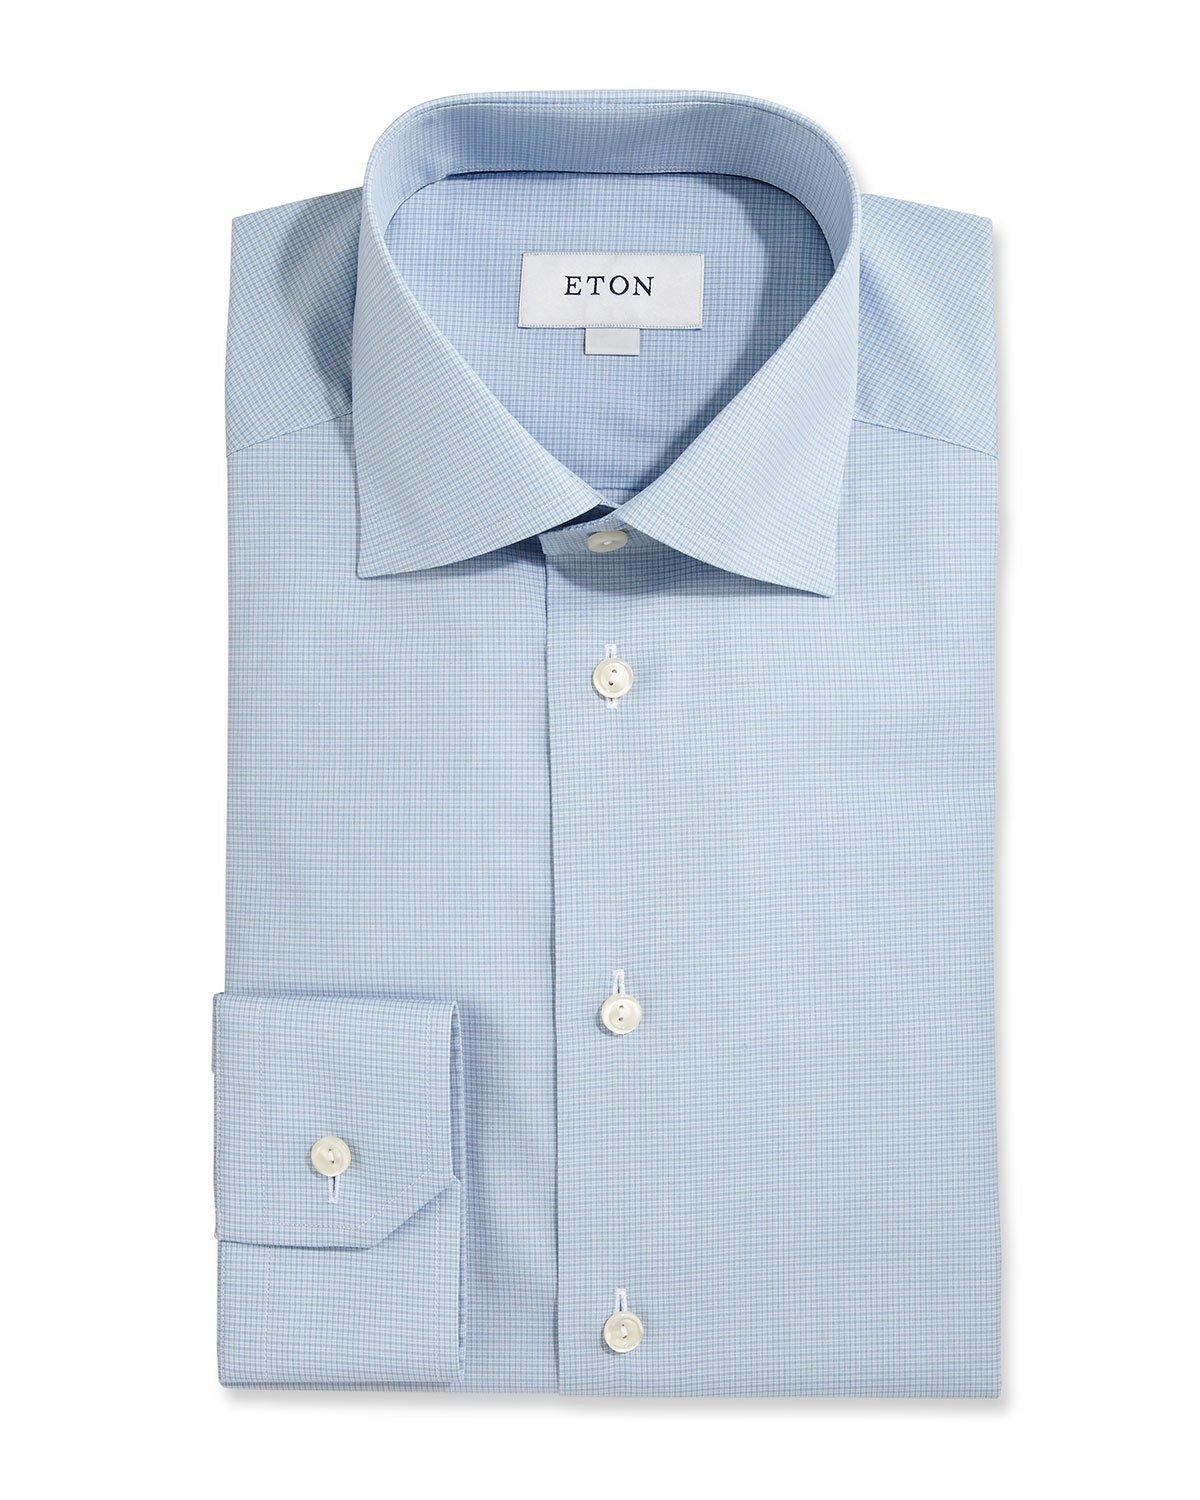 Eton Of Sweden Slim Fit Textured Check Dress Shirt In Blue